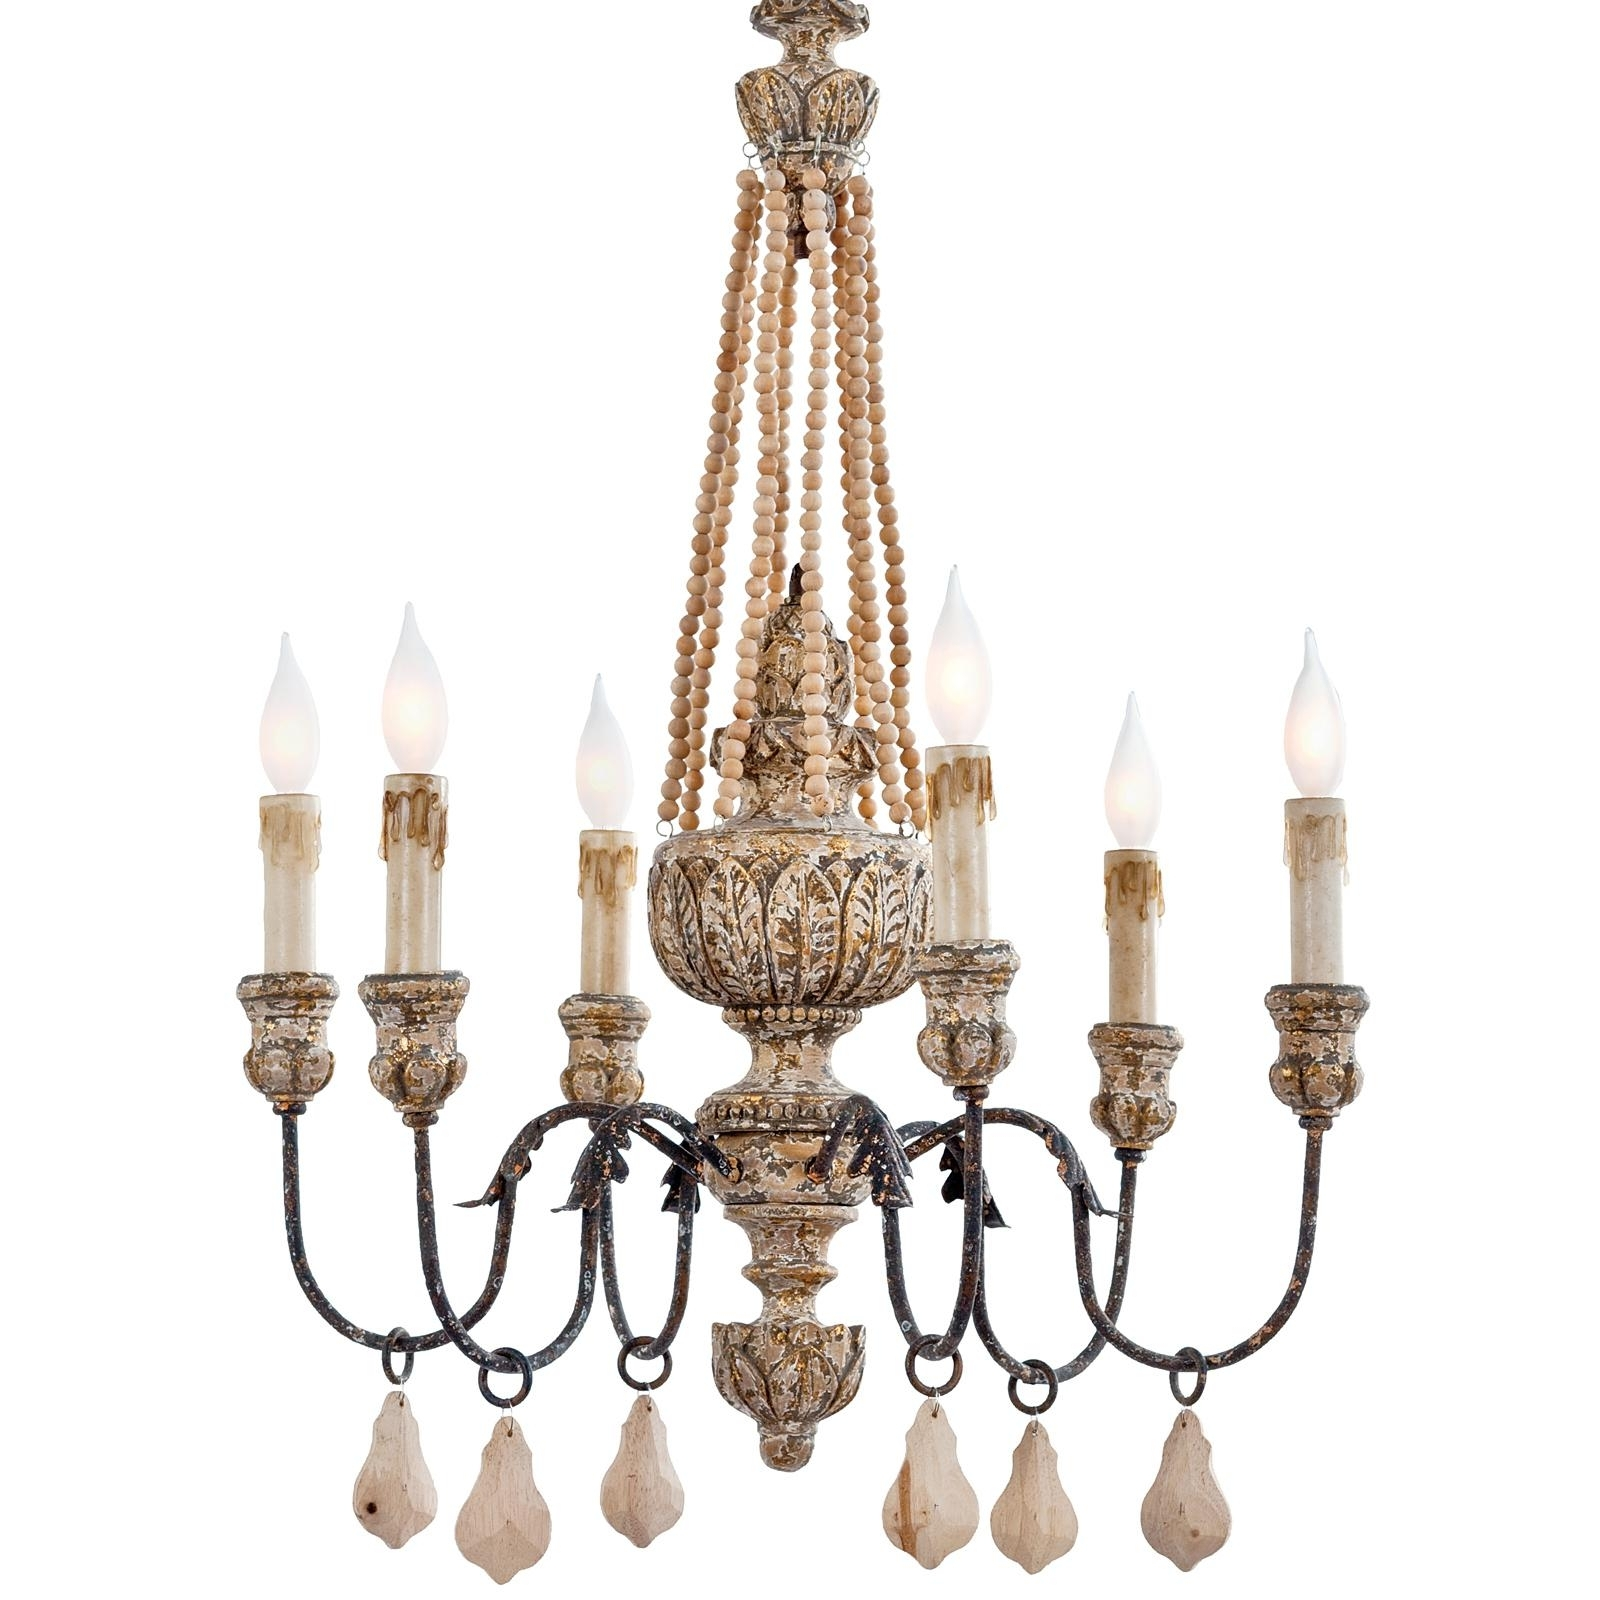 2017 Chandelier Accessories With Lighting: Elegant Wooden Chandeliers For Home Accessories Ideas With (View 4 of 15)